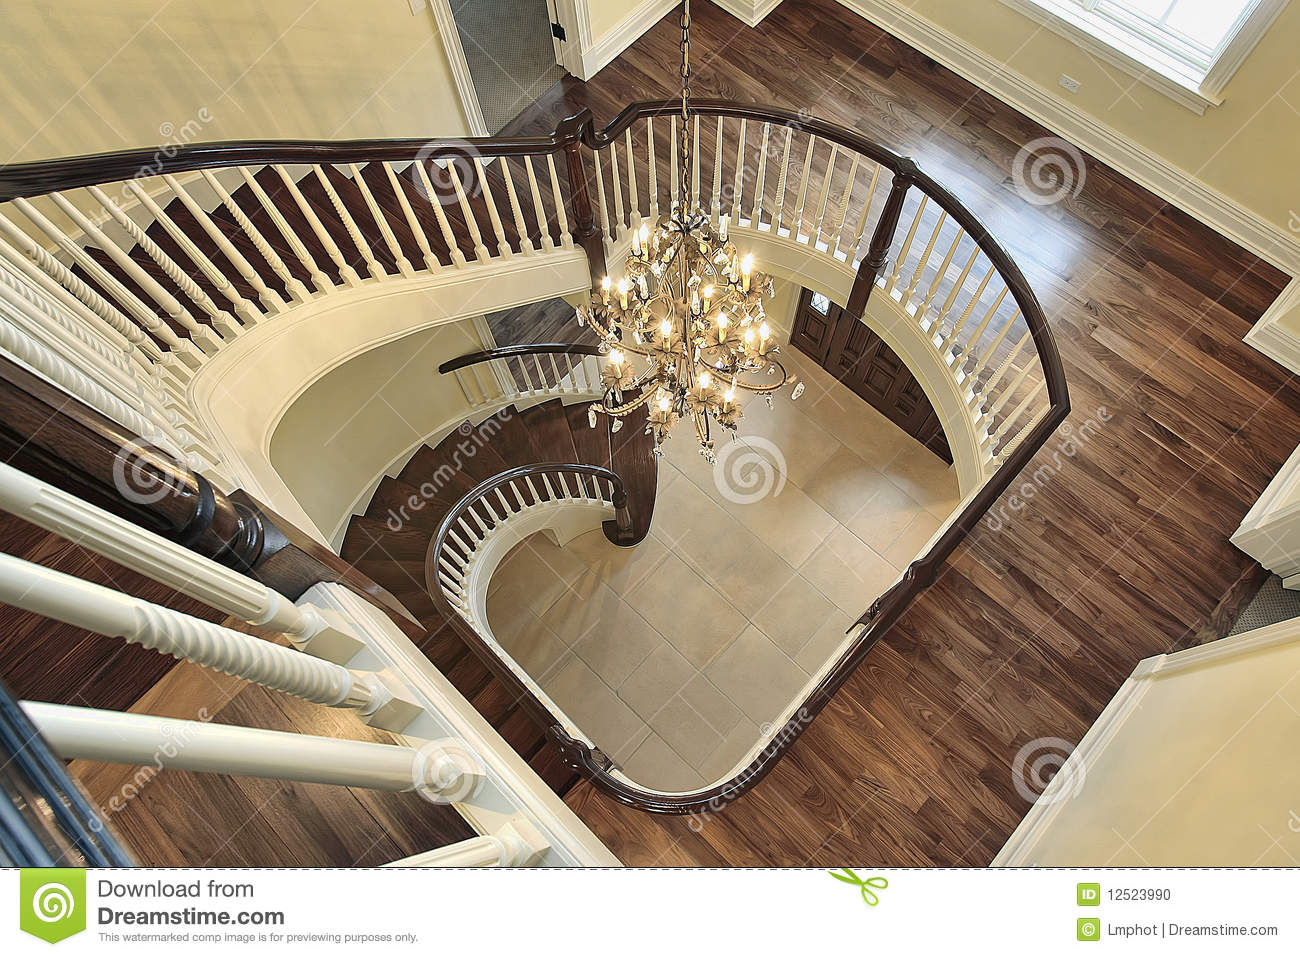 Spiral staircase with foyer view in new luxury construction home.